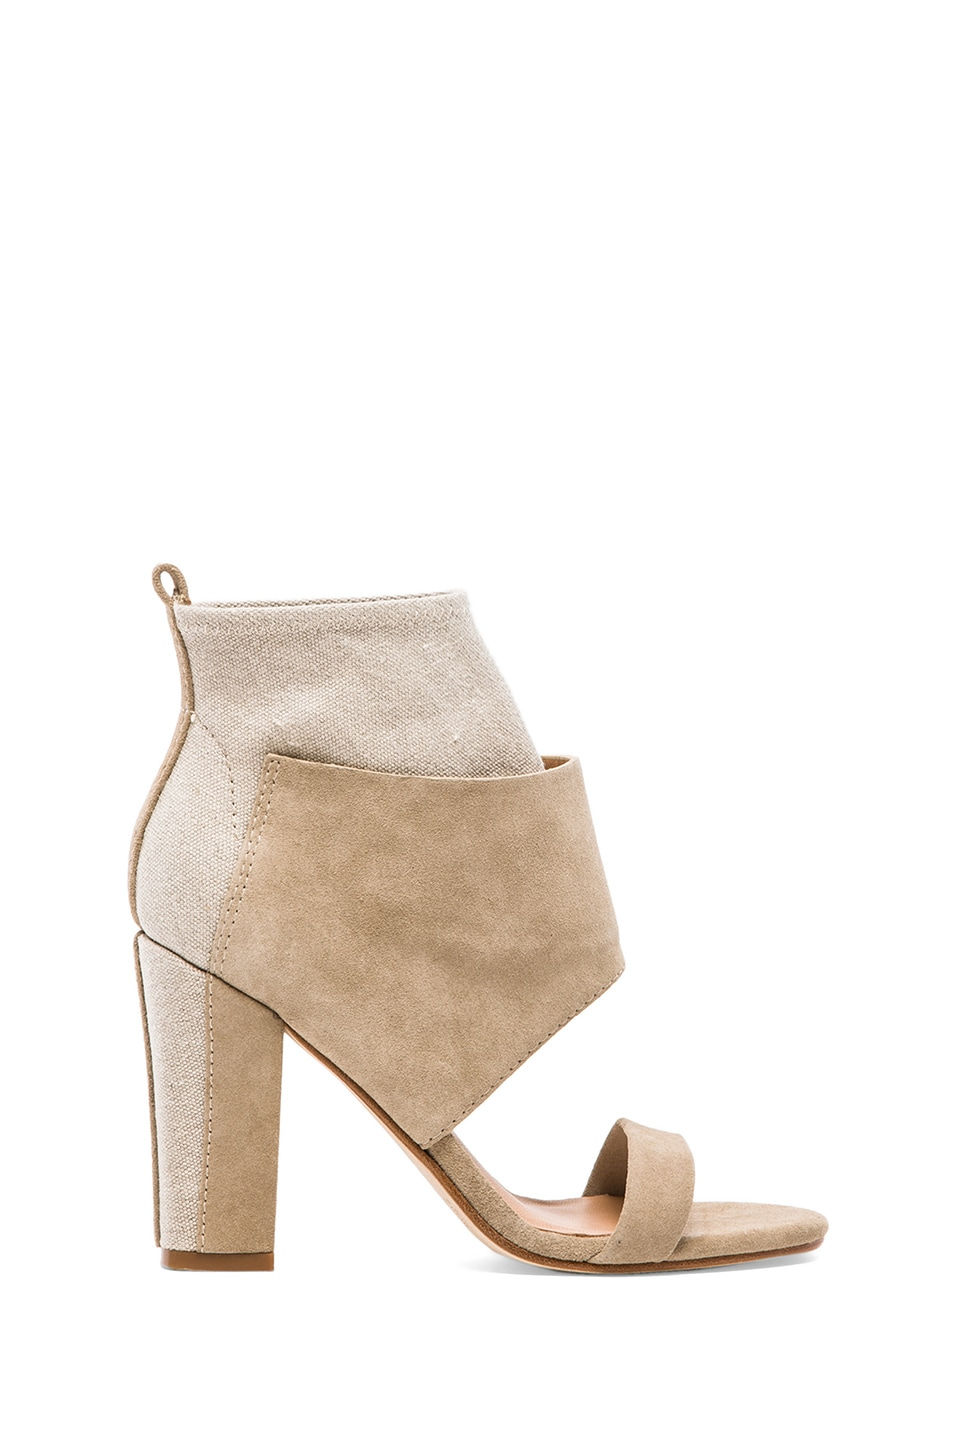 Belle by Sigerson Morrison Belden Sandal in Stucco & Natural